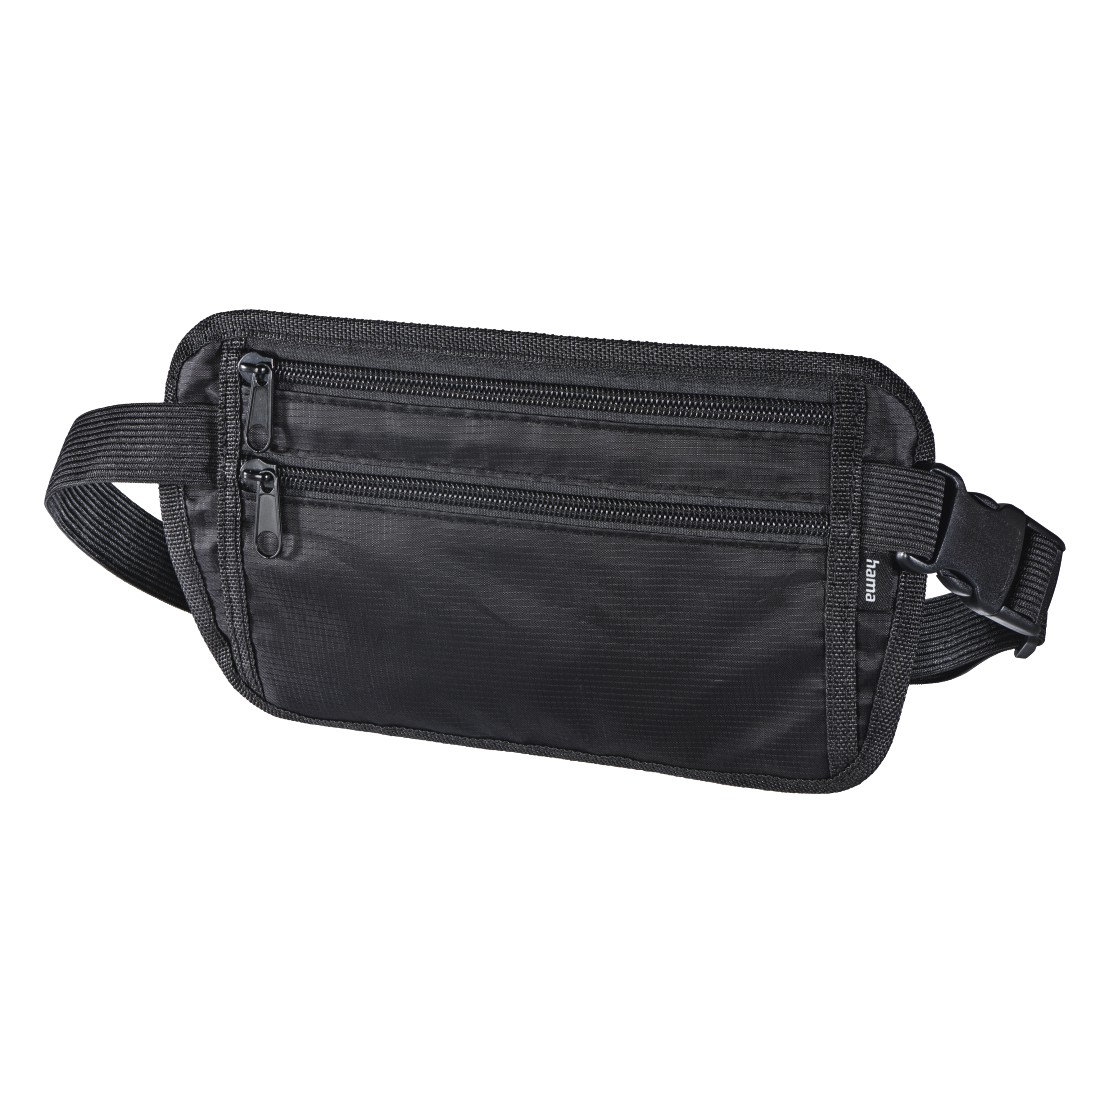 abx High-Res Image - Hama, Money Pouch, black